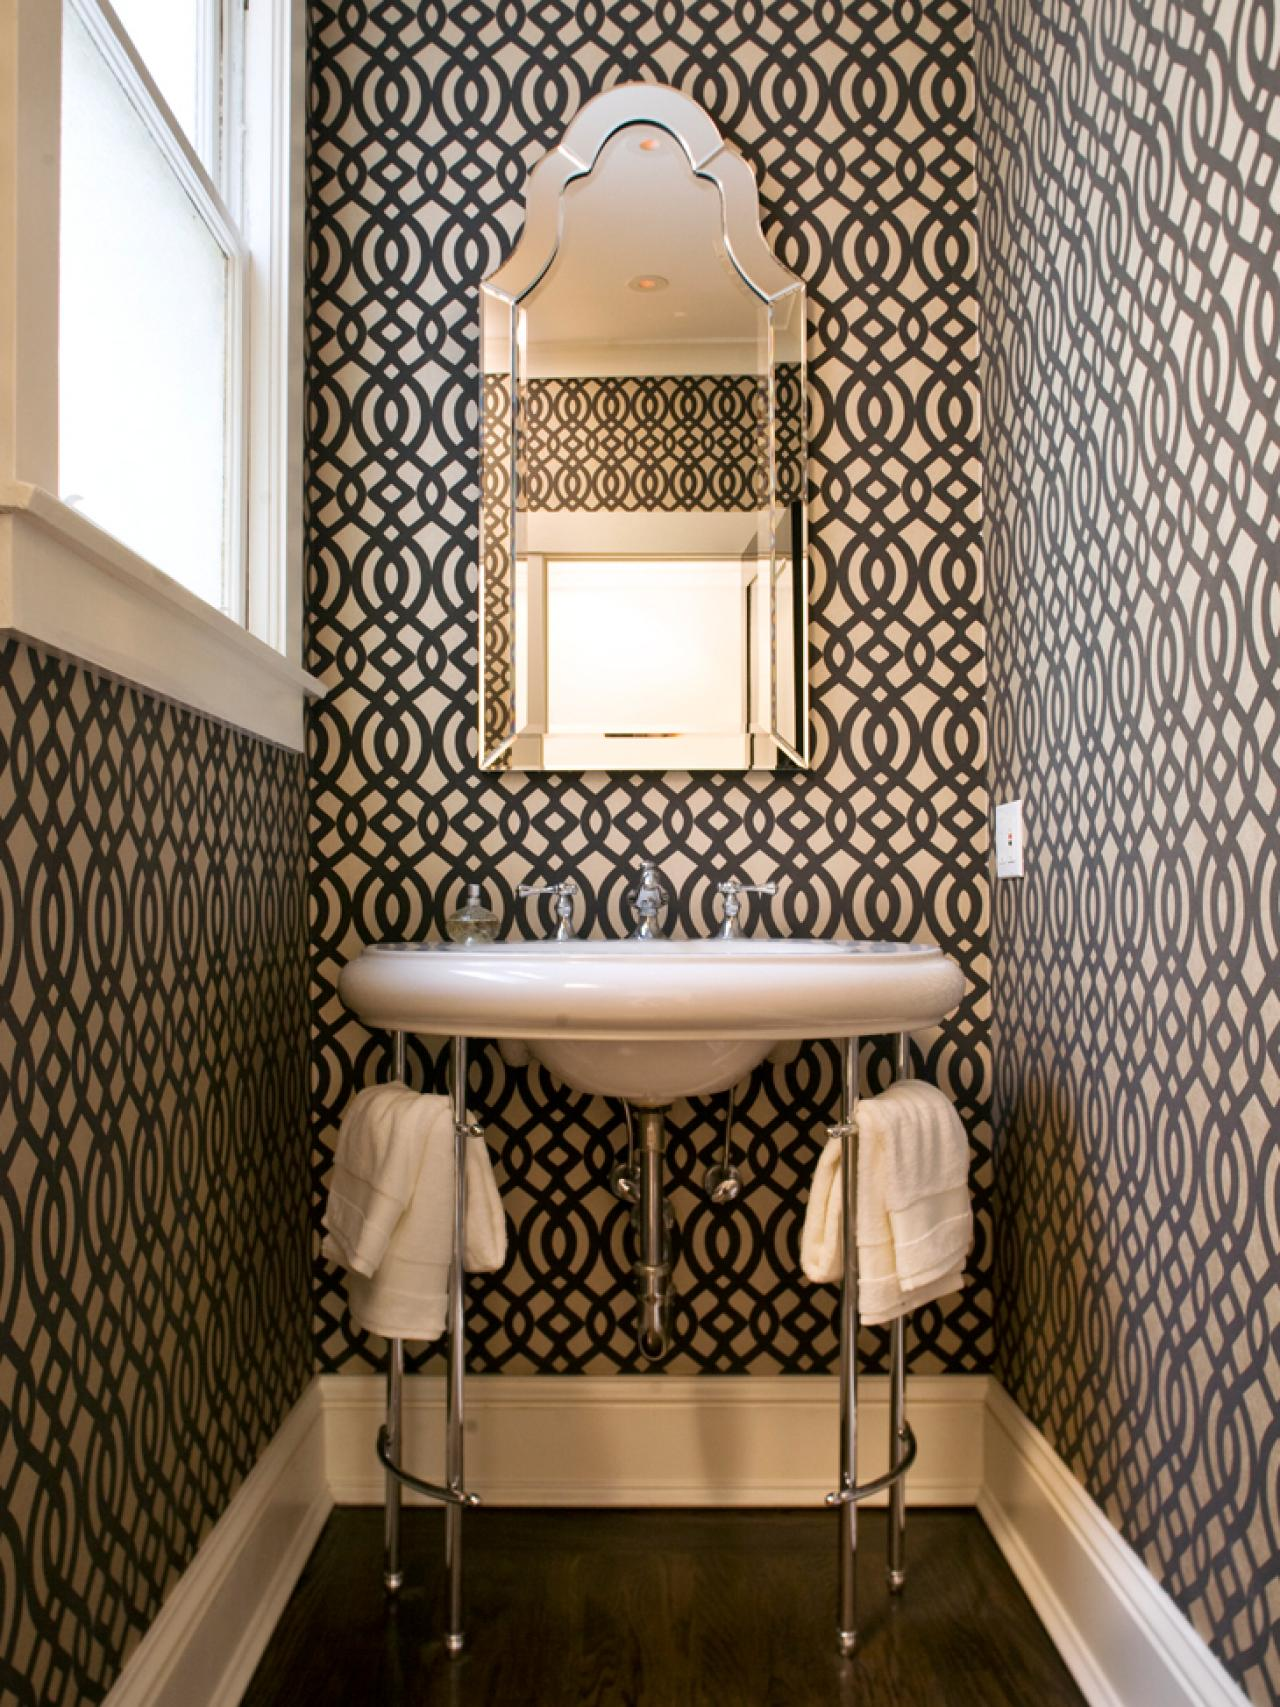 DP_Jennifer-Jones-contemporary-black-white-powder-room_s3x4.jpg.rend.hgtvcom.1280.1707.jpeg